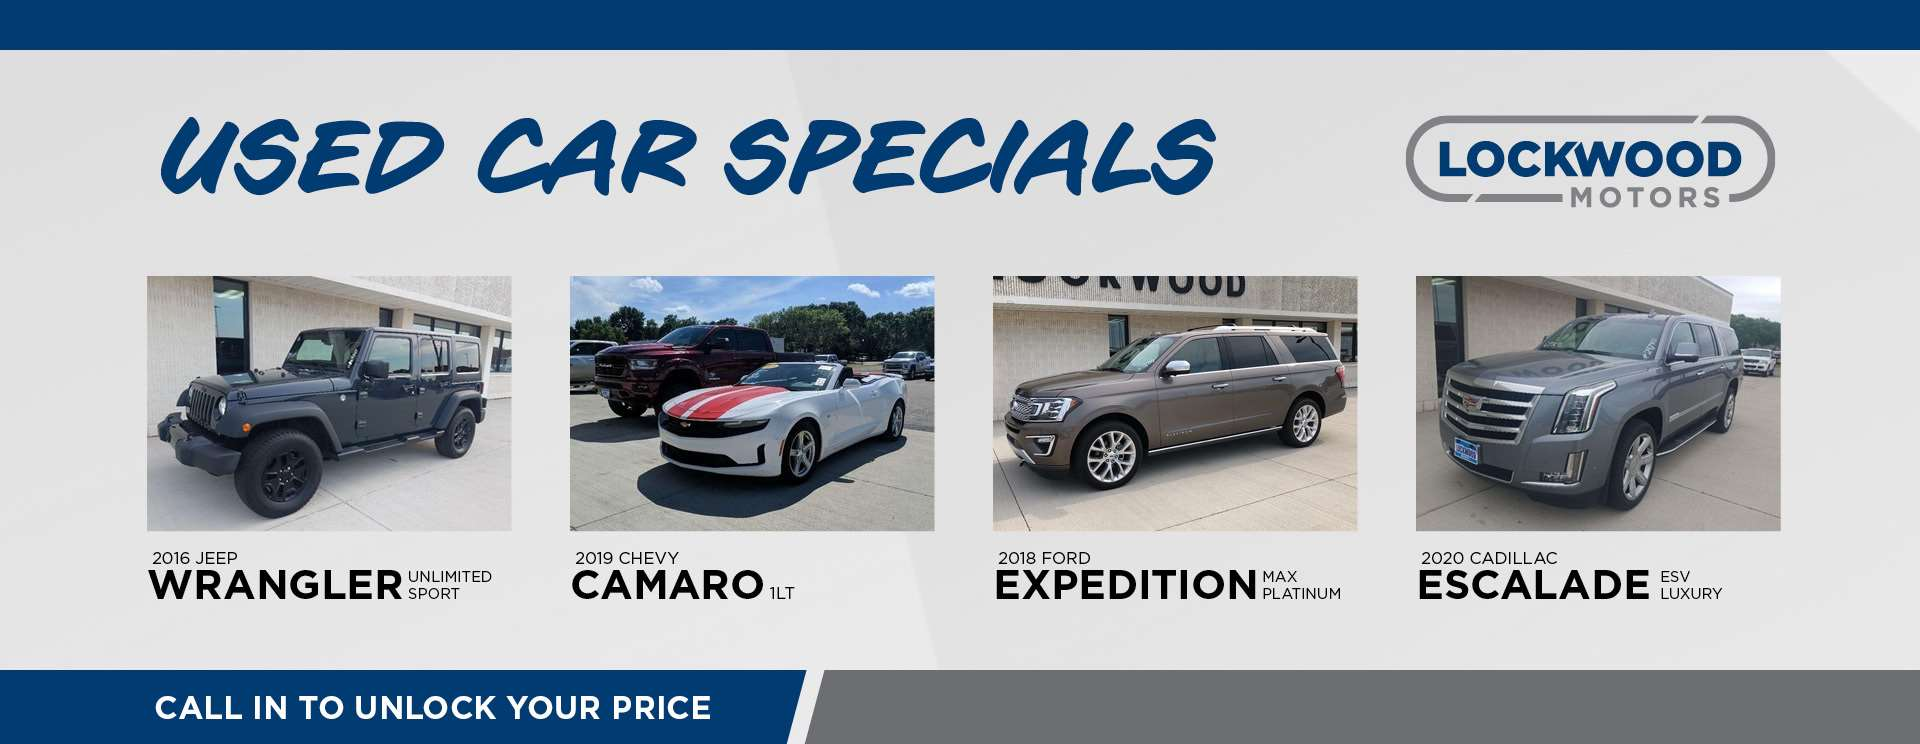 July GM Used Car Specials - HP 3